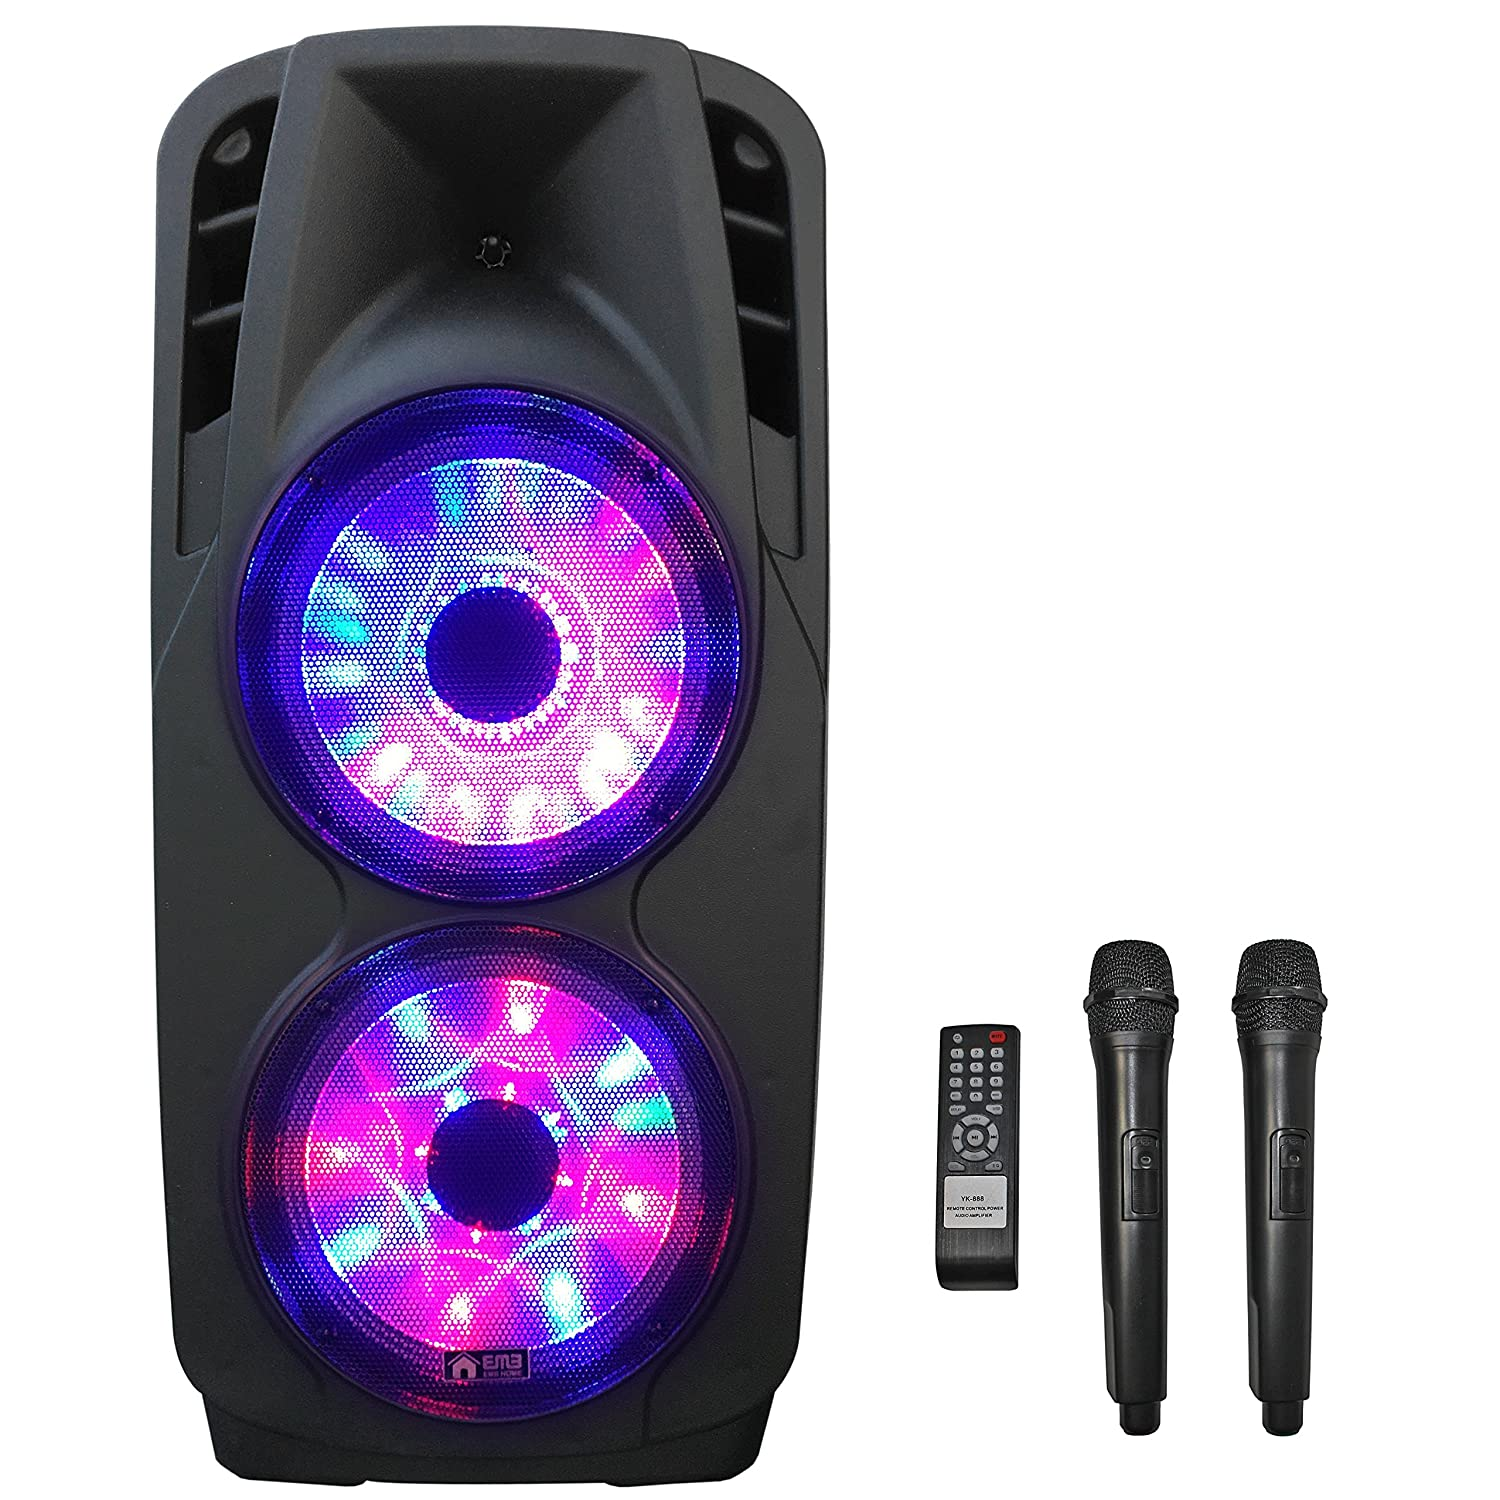 Sony Gtkxb7bc High Power Home Audio System With Gallery For Gt 2 Way Lighting Wiring Diagram Emb Pkl6000 2000w 2x12 Pa Rechargeable Trolley Speaker